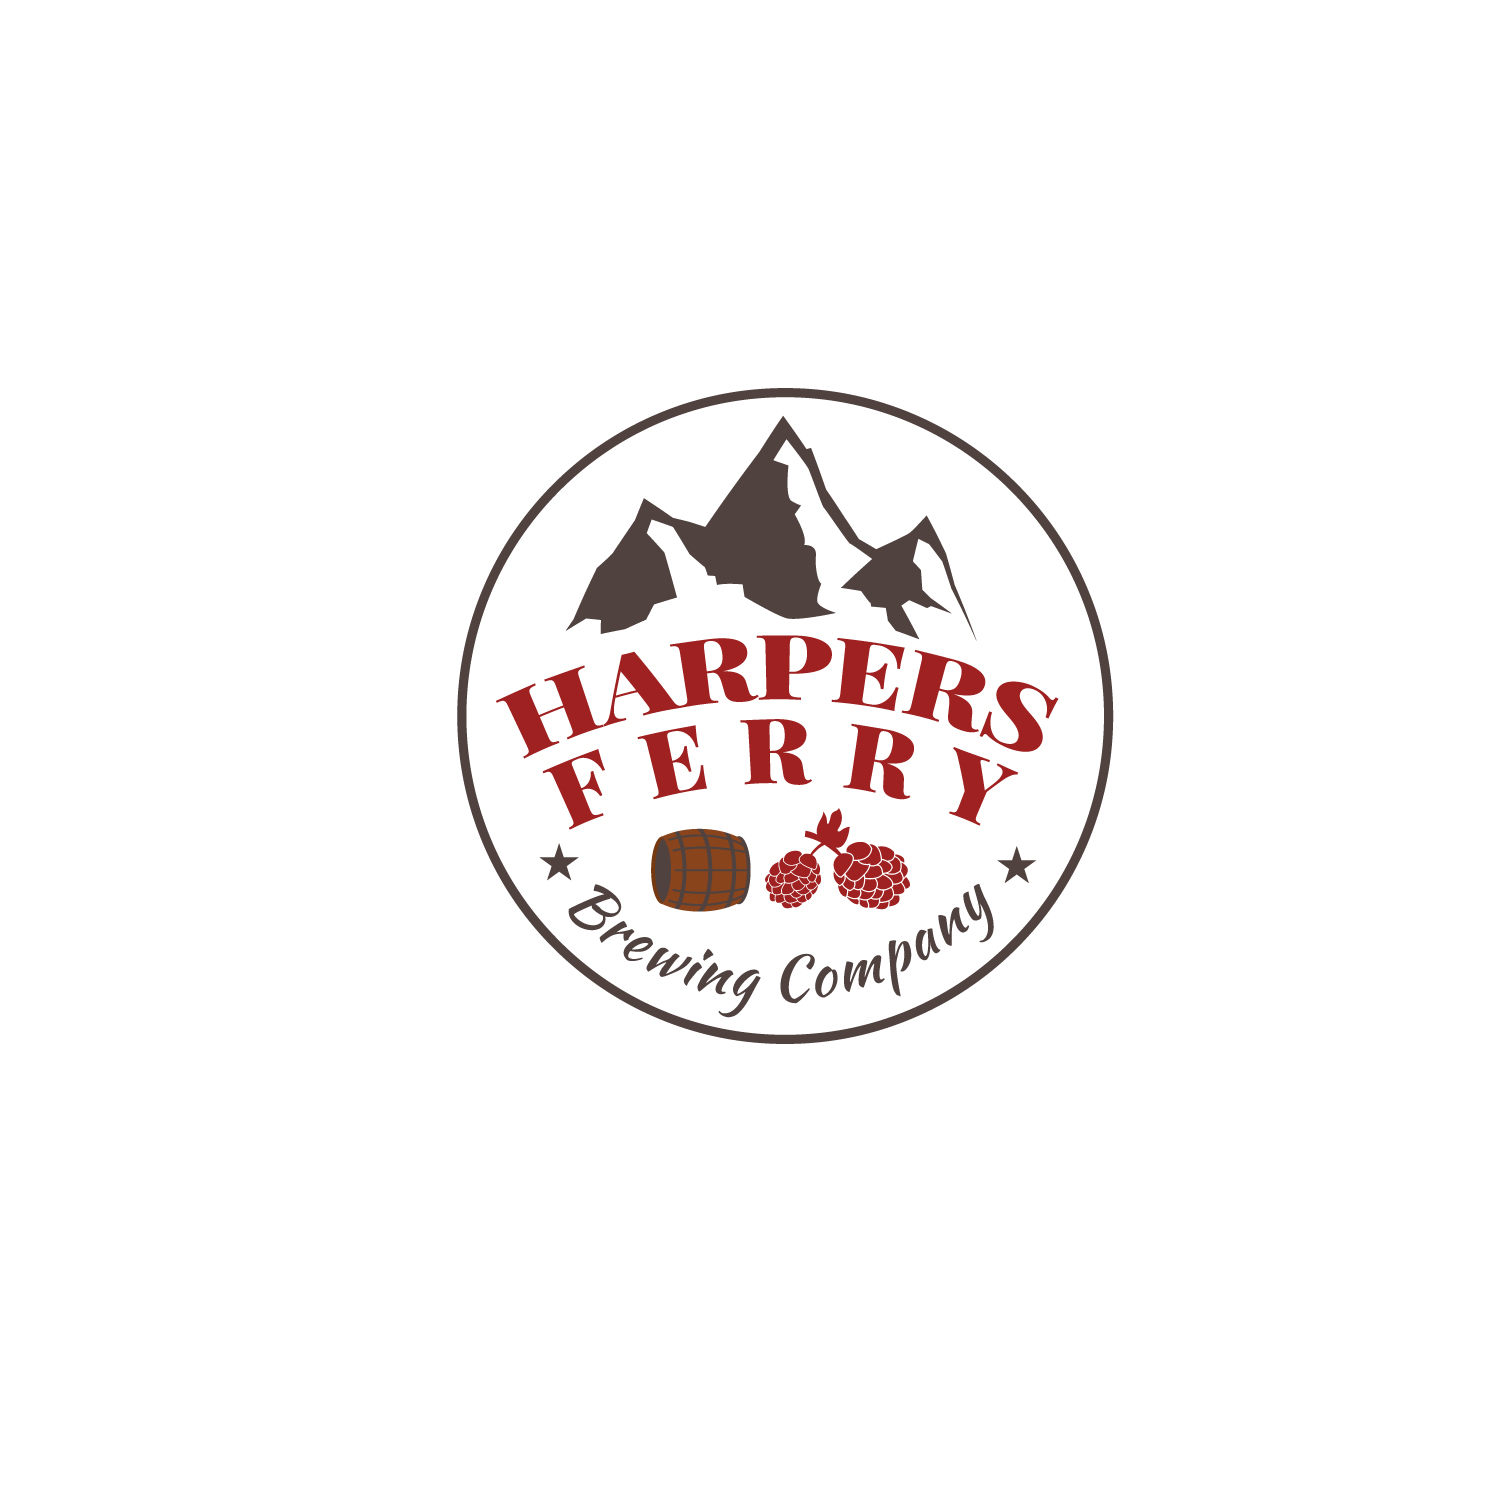 Logo Design by Bac Huu - Entry No. 15 in the Logo Design Contest Unique Logo Design Wanted for Harpers ferry brewing company.